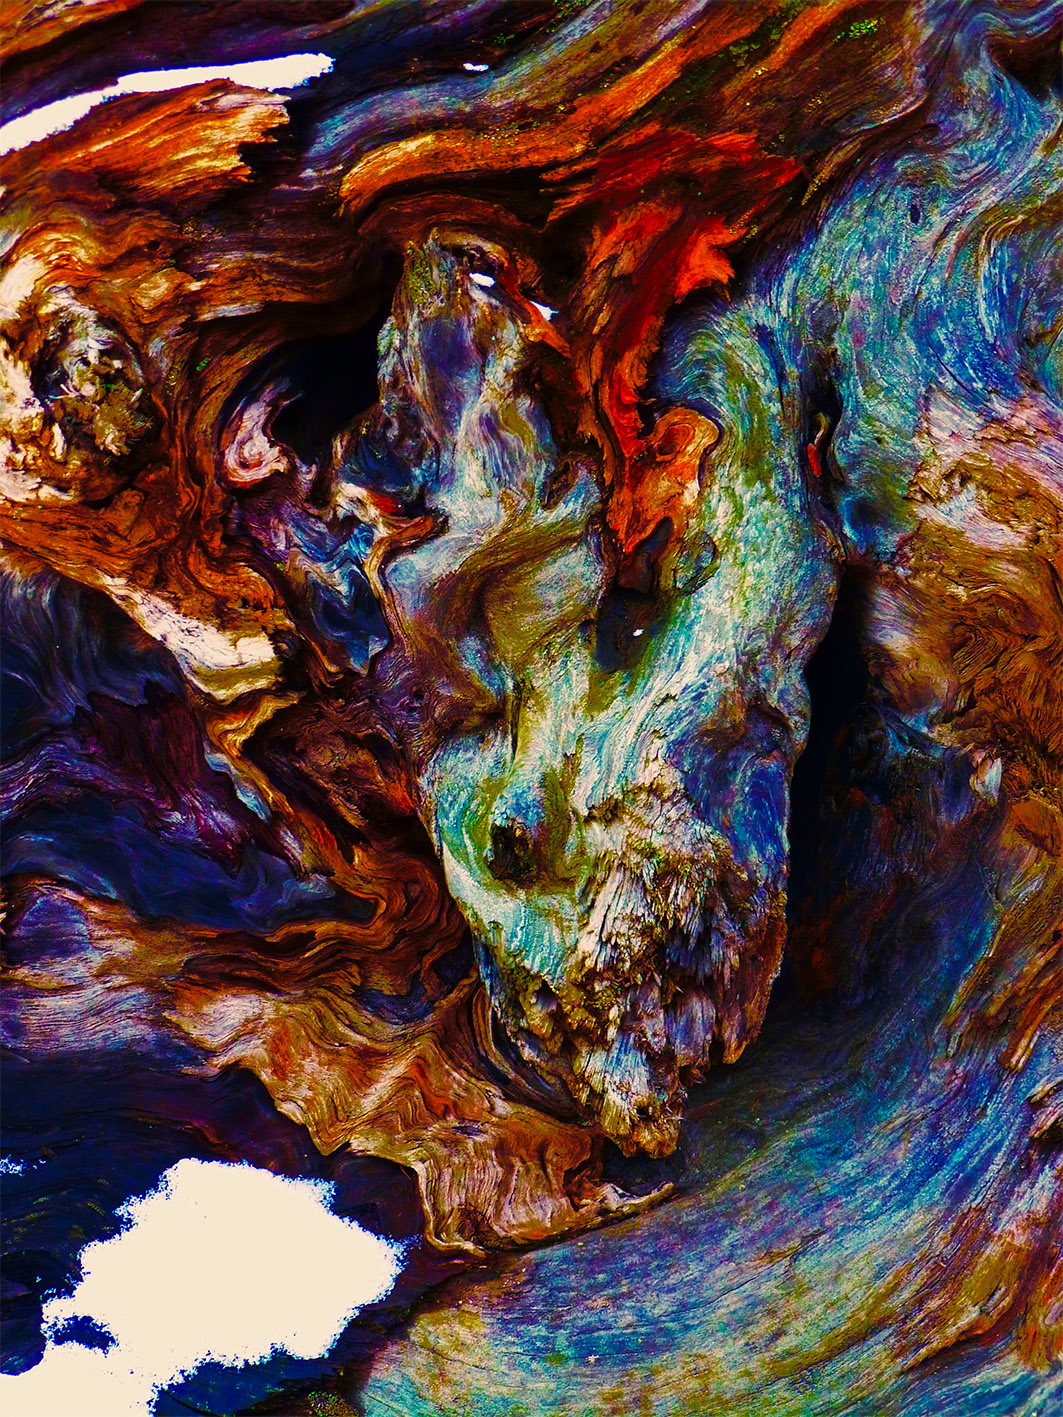 The swirling forces of Ted Barkhorn's Leviathan evoke a stormy Atlantic